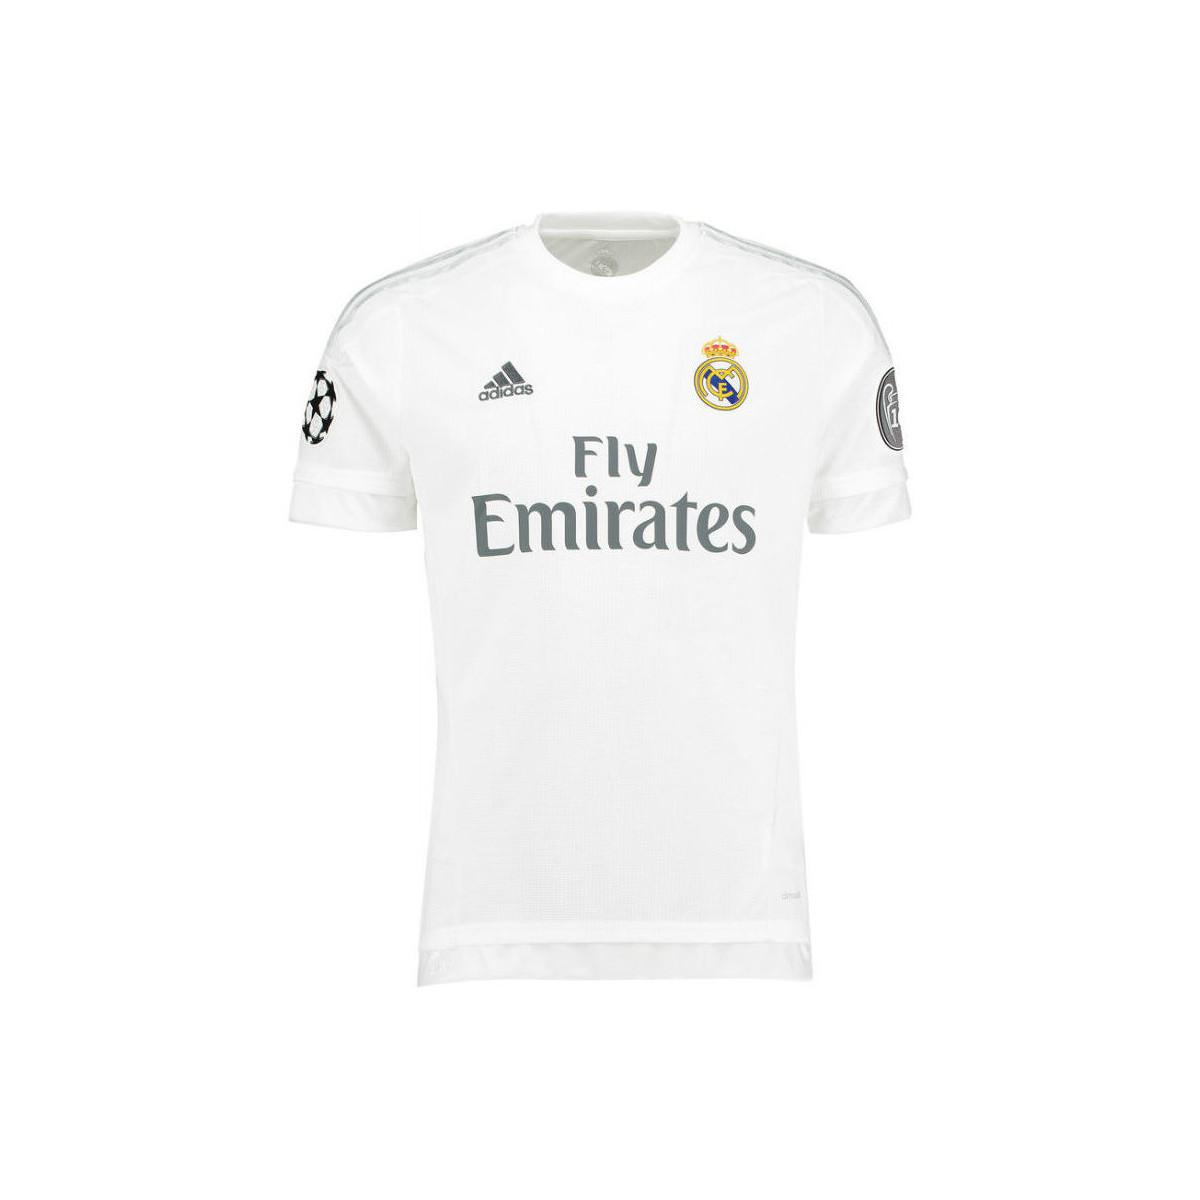 474ad57833a Adidas - 2015-2016 Real Madrid Ucl Home Shirt (sergio Ramos 4) Women s.  View fullscreen